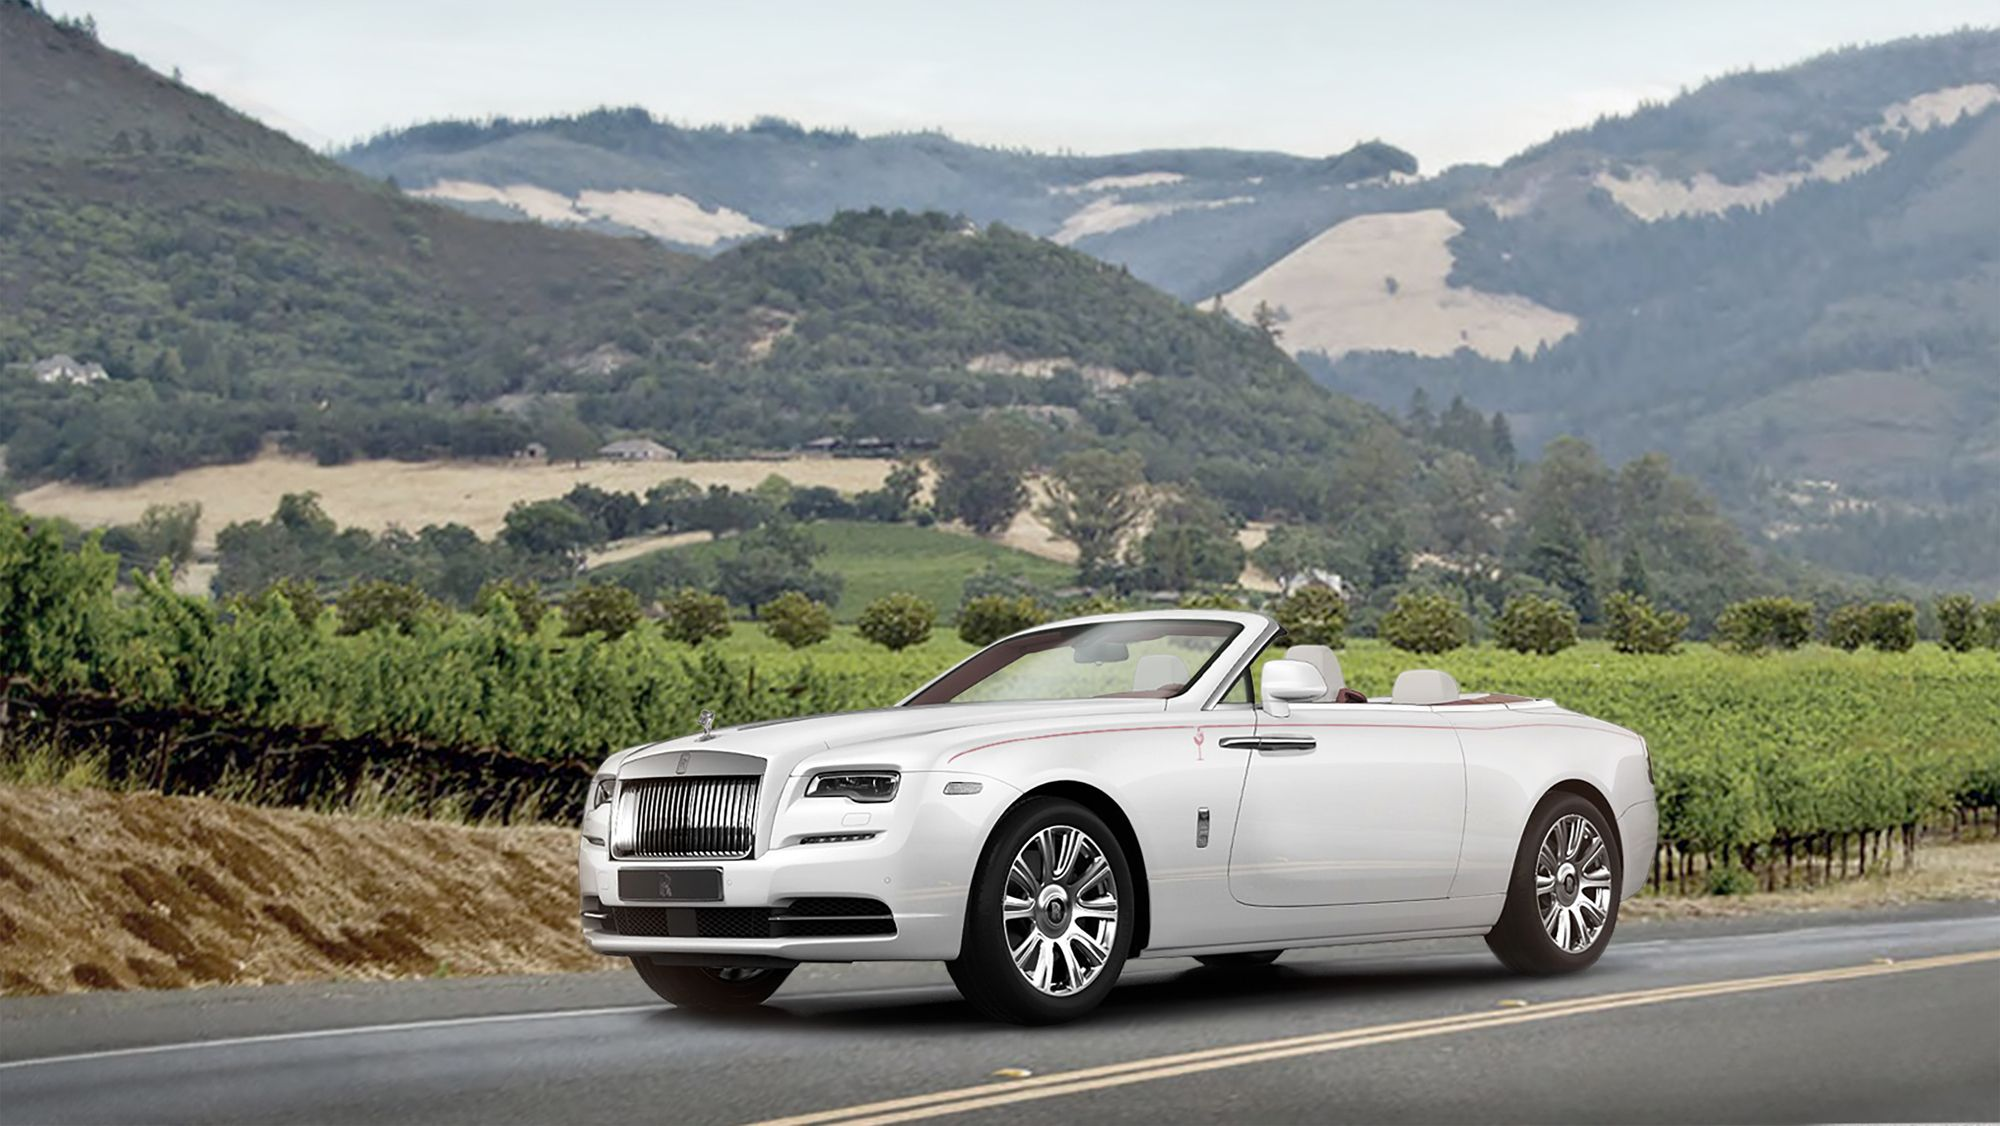 Don T Miss Your Only Chance To Own The Very First Rolls